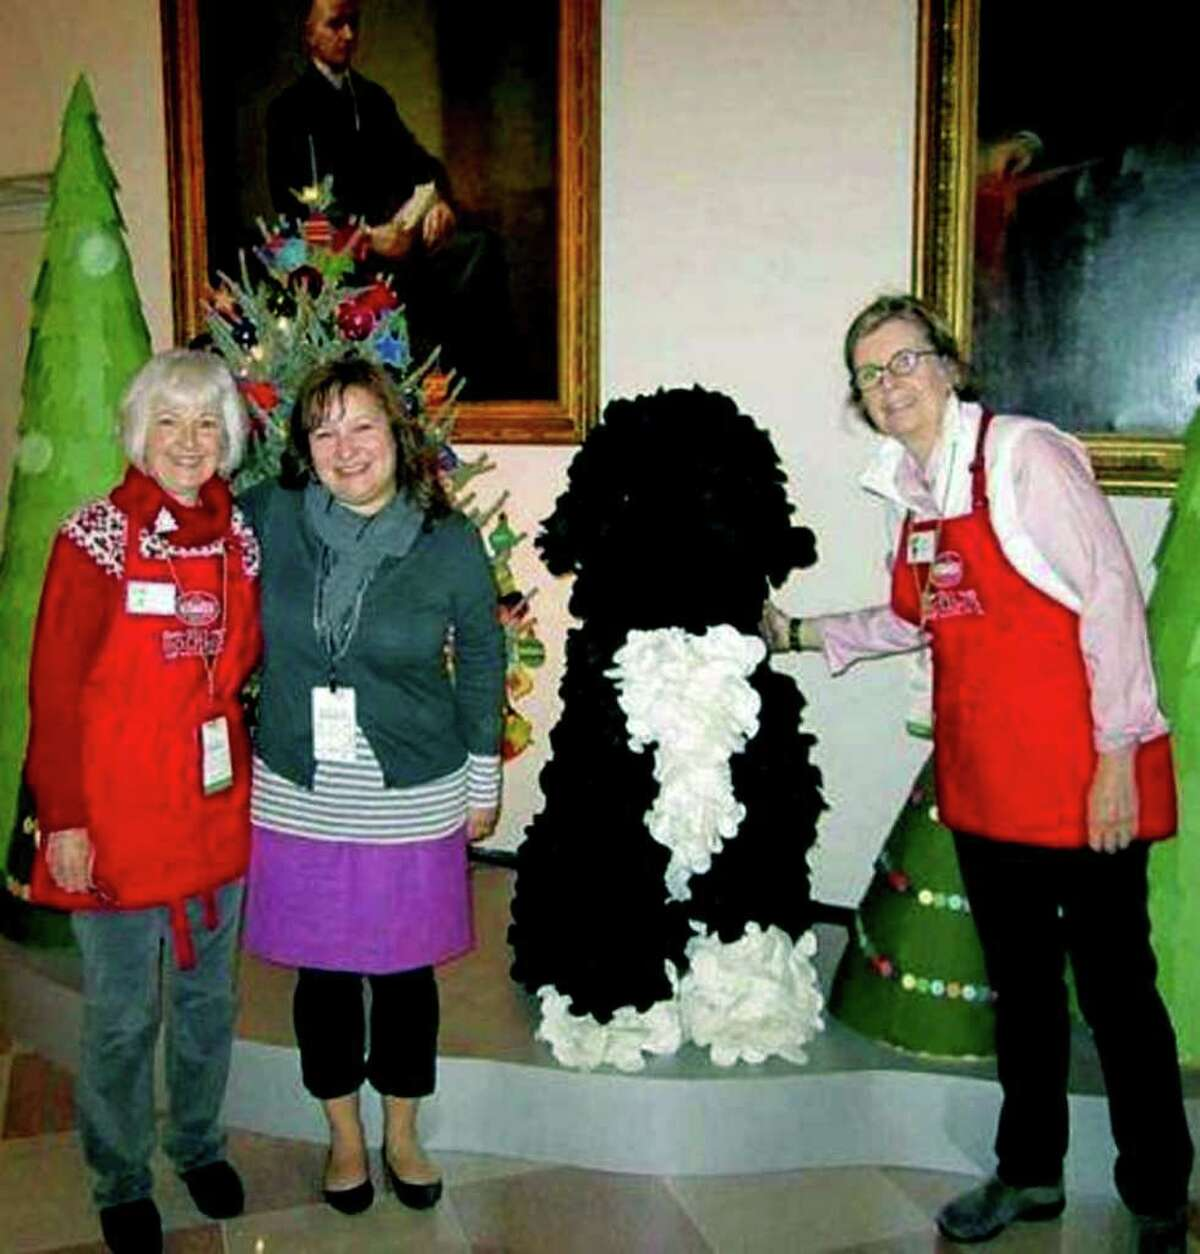 SPECTRUM/Eileen Mulvihill, right, of New Milford poses with longtime friend Karen Corcoran, left, and designer Jami Darwin Chiang, during their work time at the White House. December 2011 Courtesy of Karen Corcoran